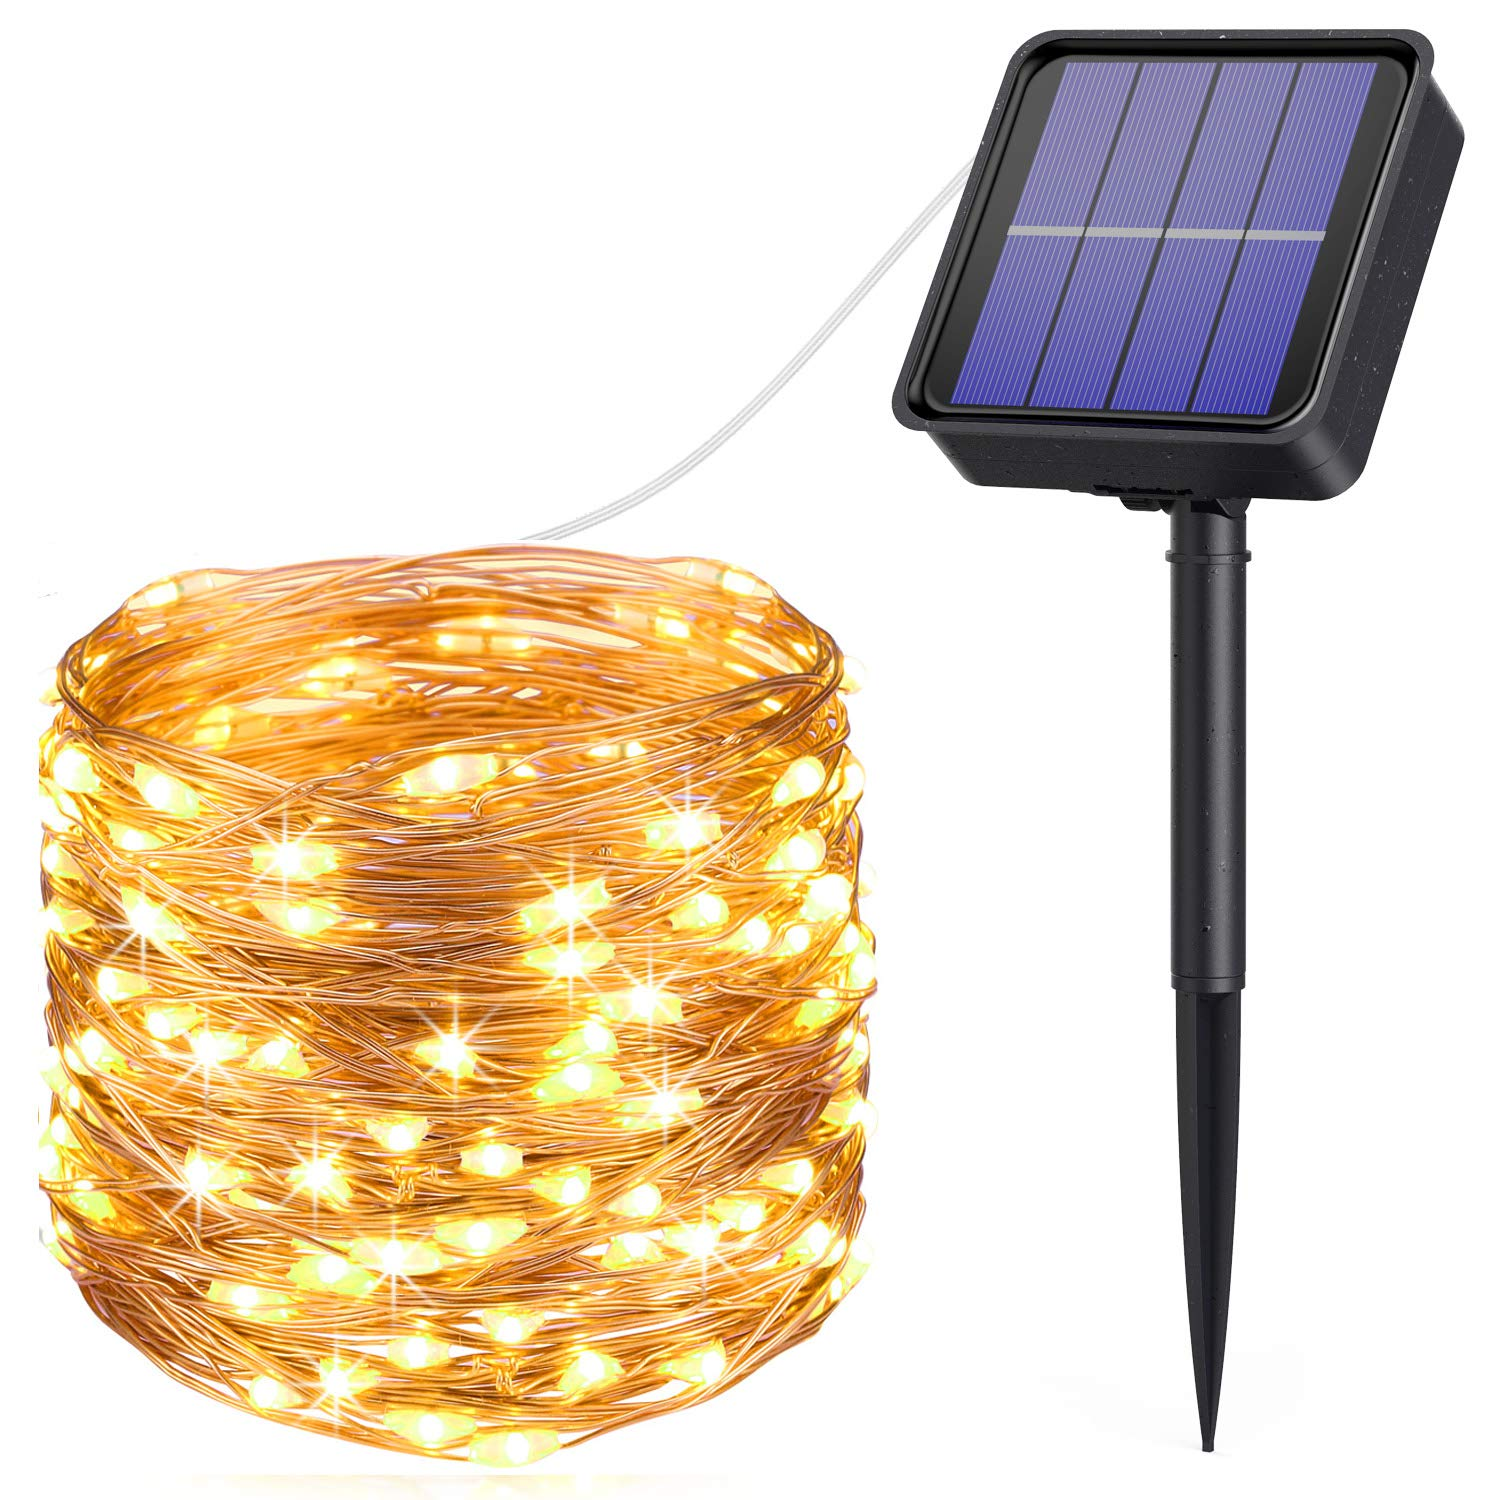 [2019 New] AMIR Solar Powered String Lights, 33ft 100 LED Outdoor String Lights, 8 Lighting Modes Waterproof Solar Decoration Lights for Gardens, Home, Dancing, Party, Christmas (Warm White + White)